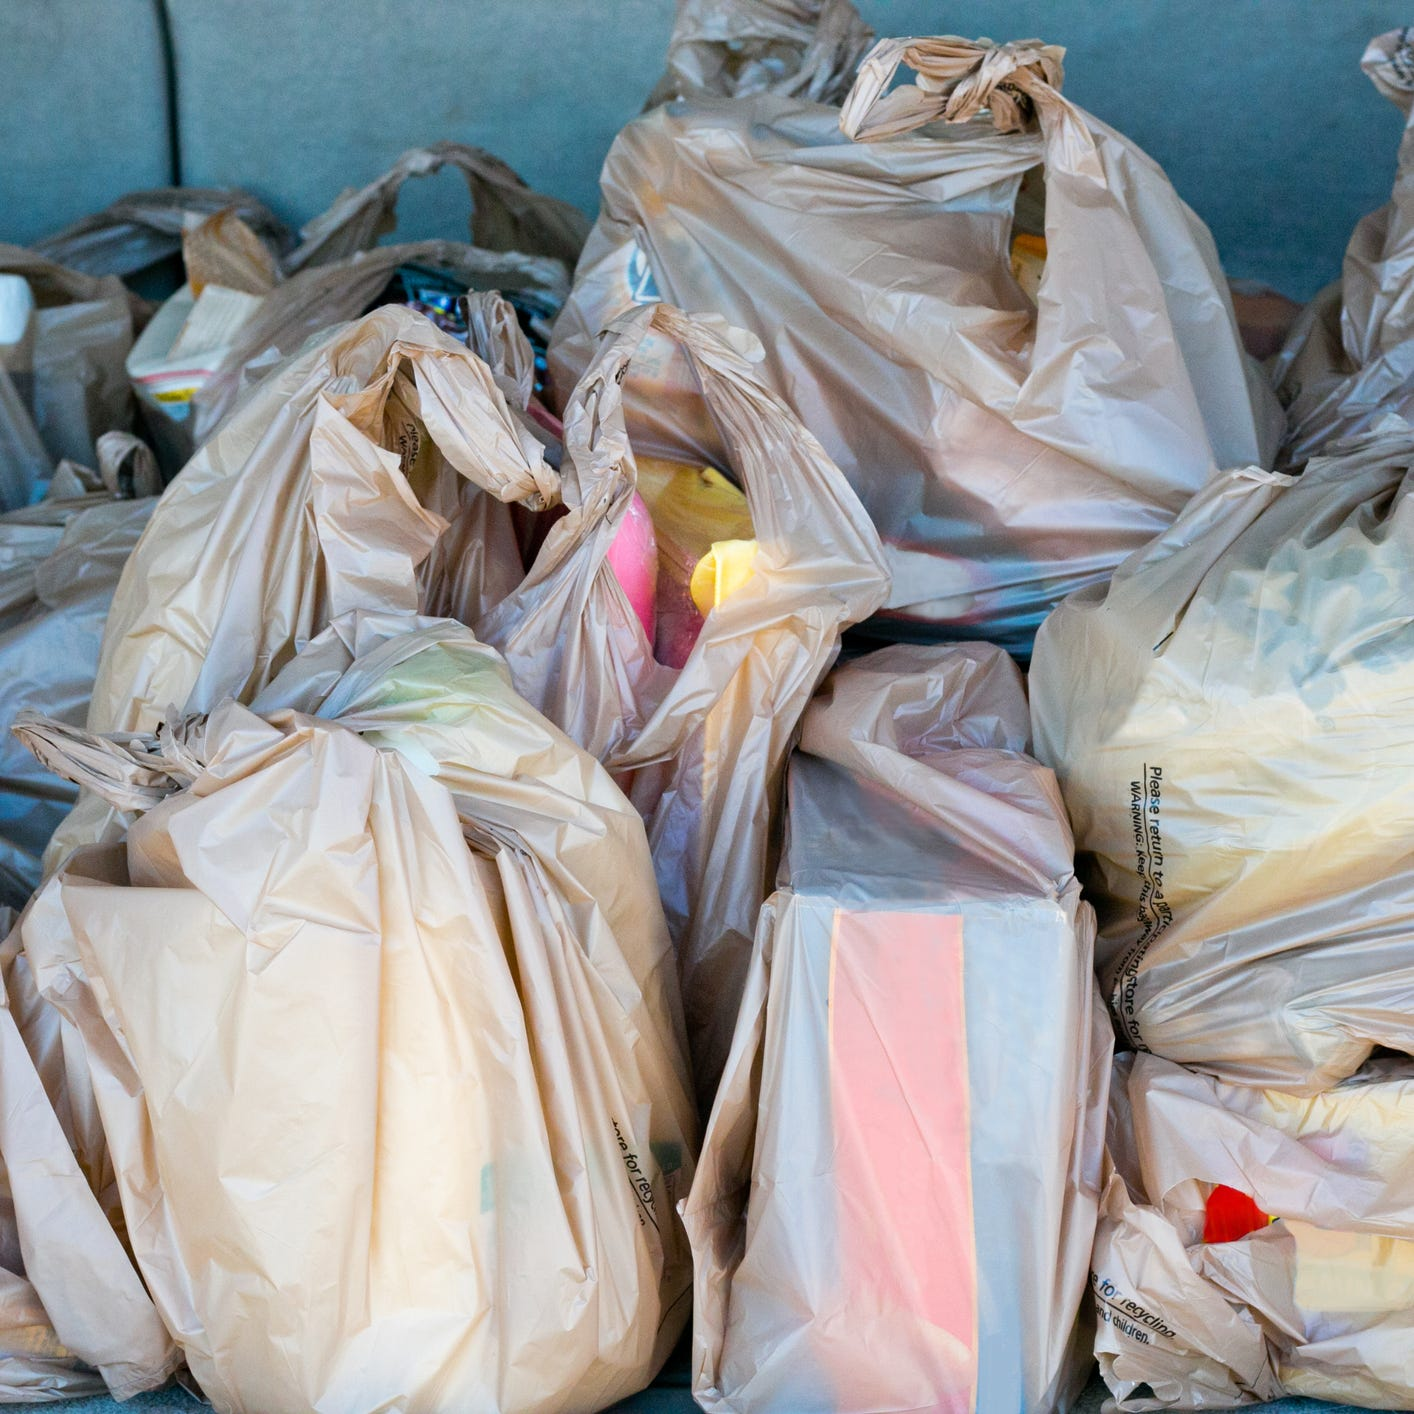 Did a new state law stop Memphis' proposed plastic bag fee? 6 questions answered